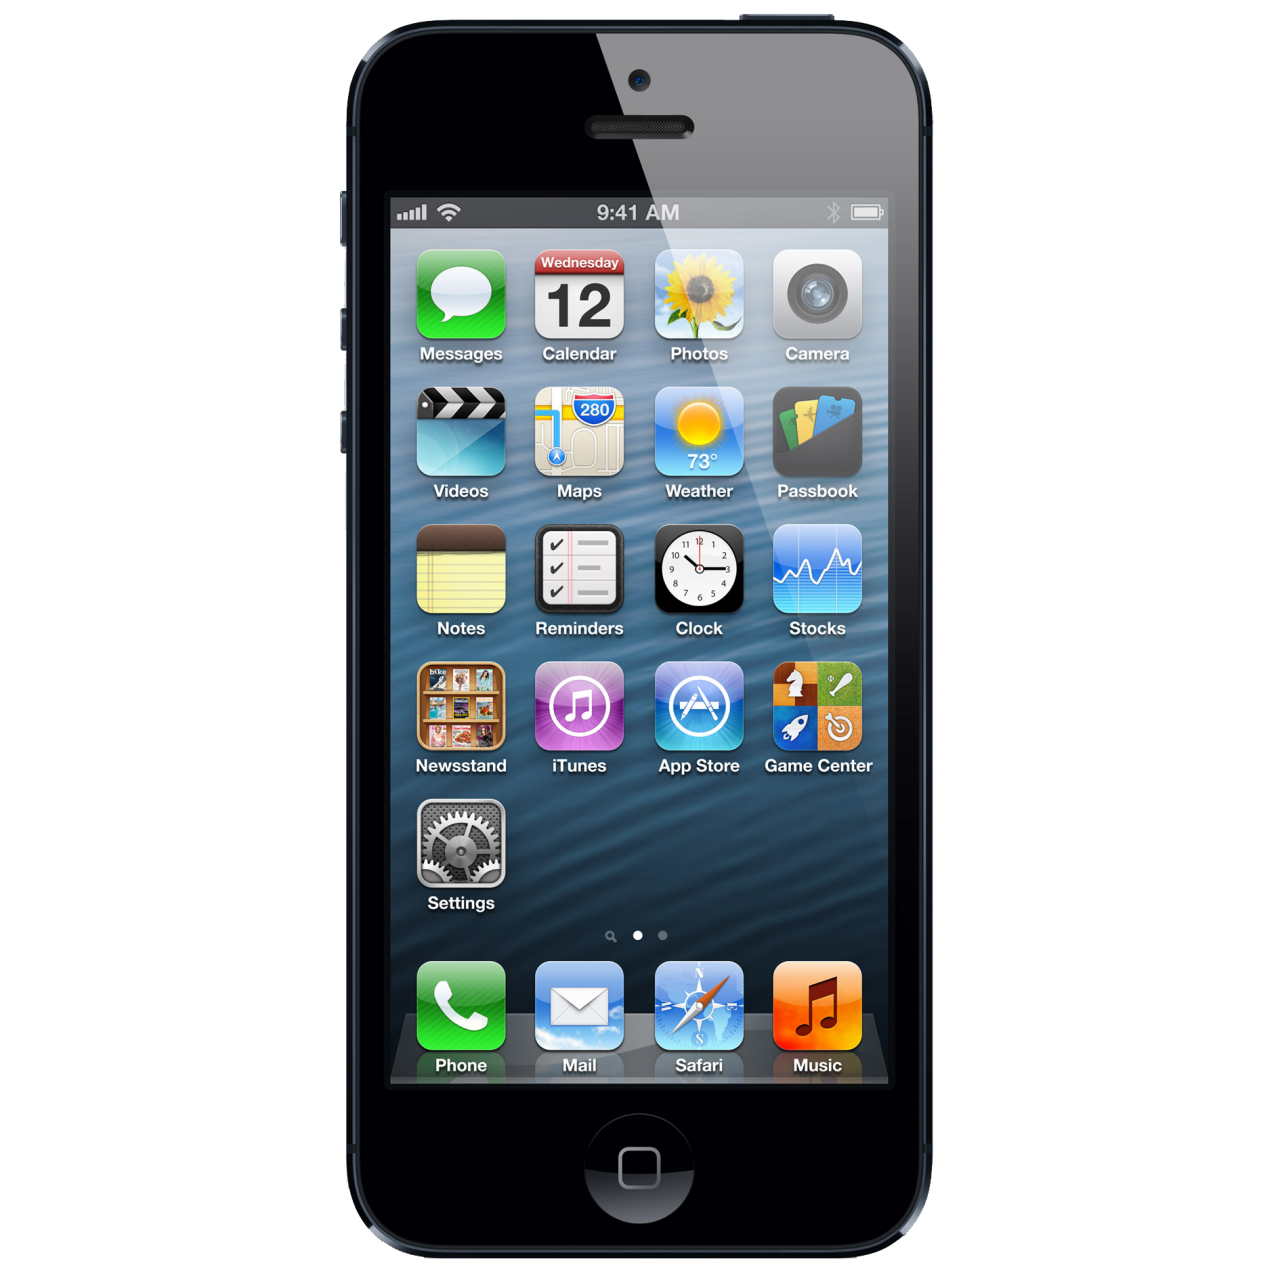 iphone first generation 5070p